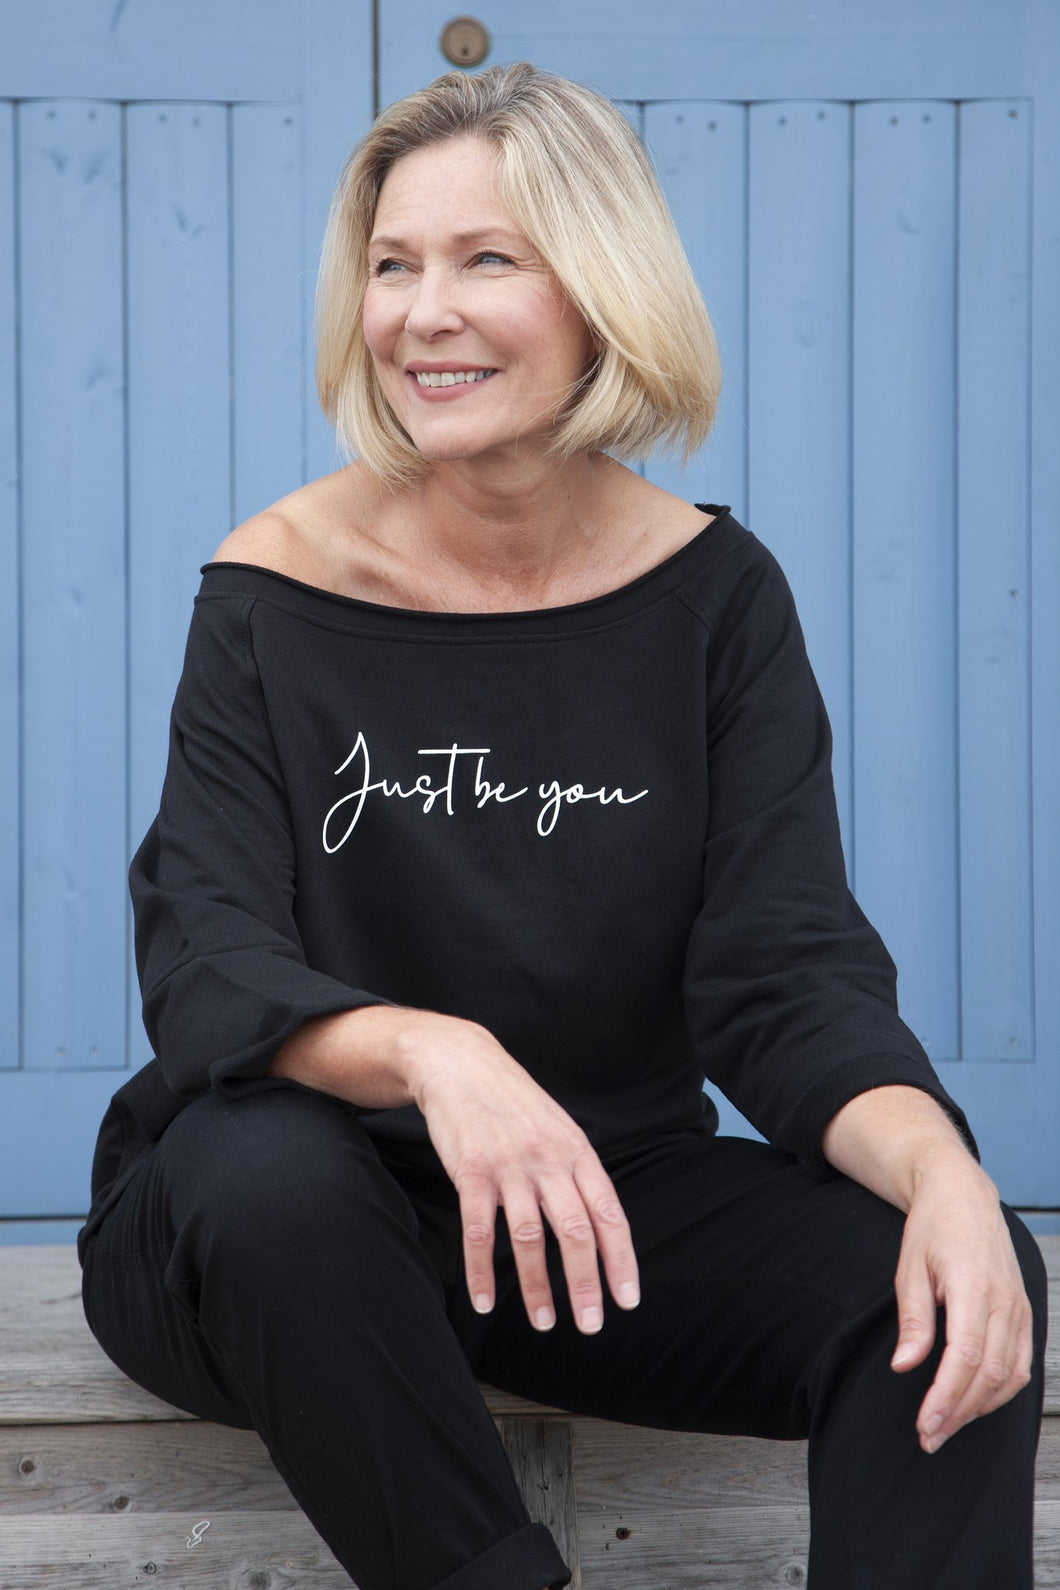 'Just be you' Women's Oversized Black Sweater